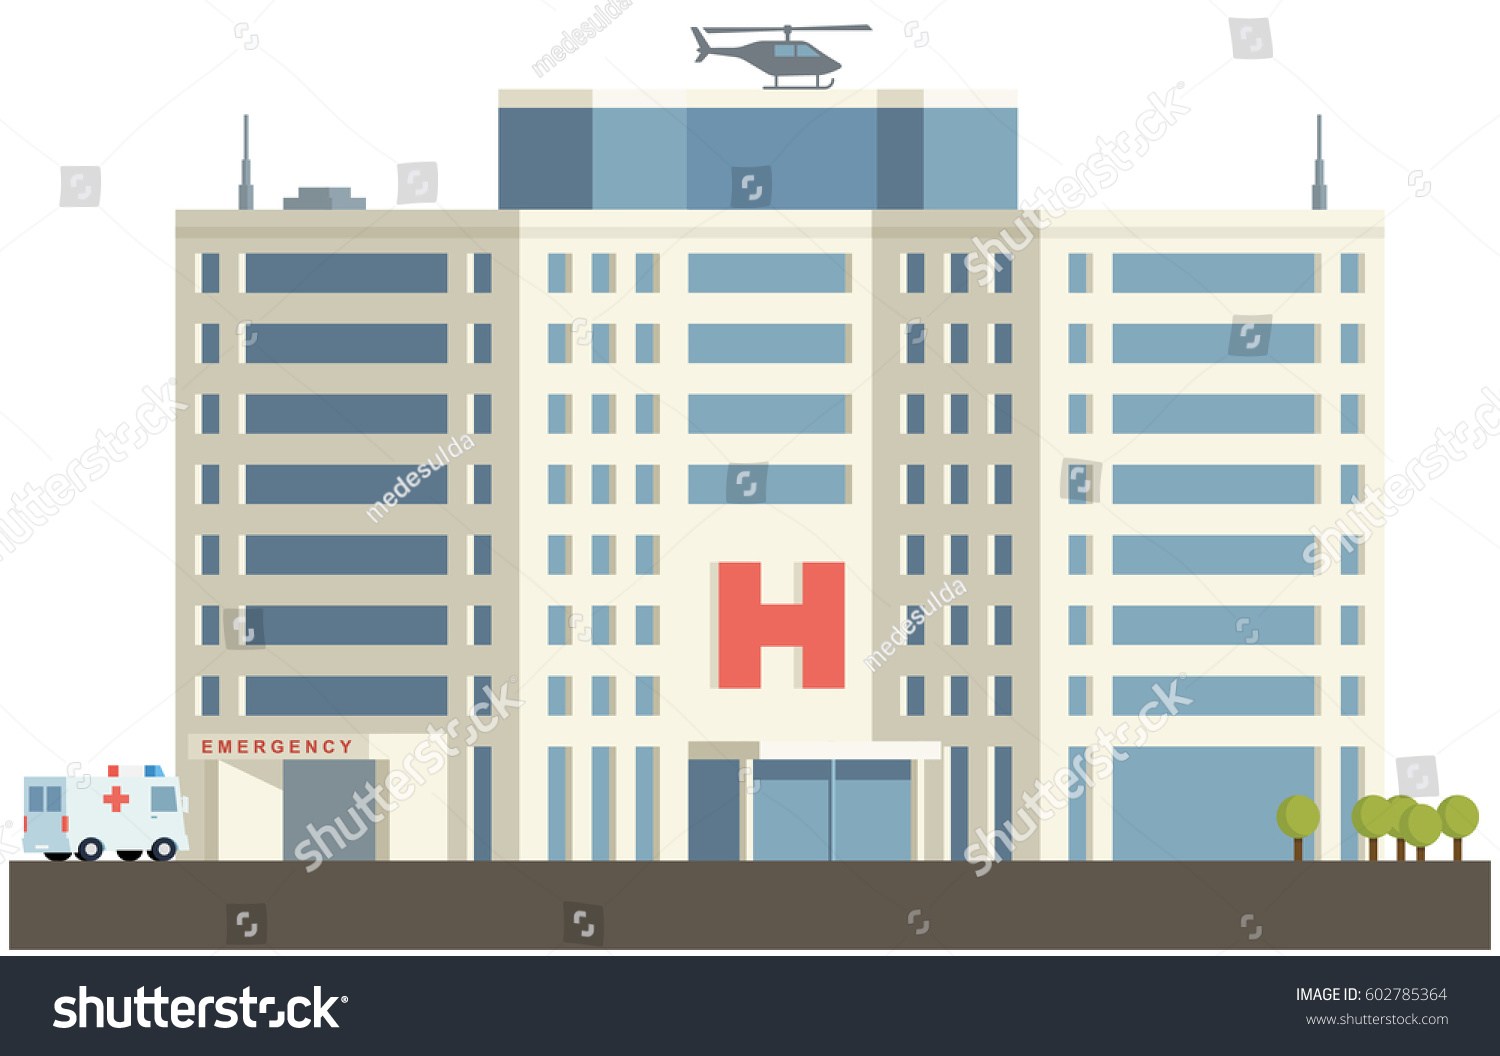 Hospital building flat design stock vector 602785364 shutterstock hospital building in flat design malvernweather Images